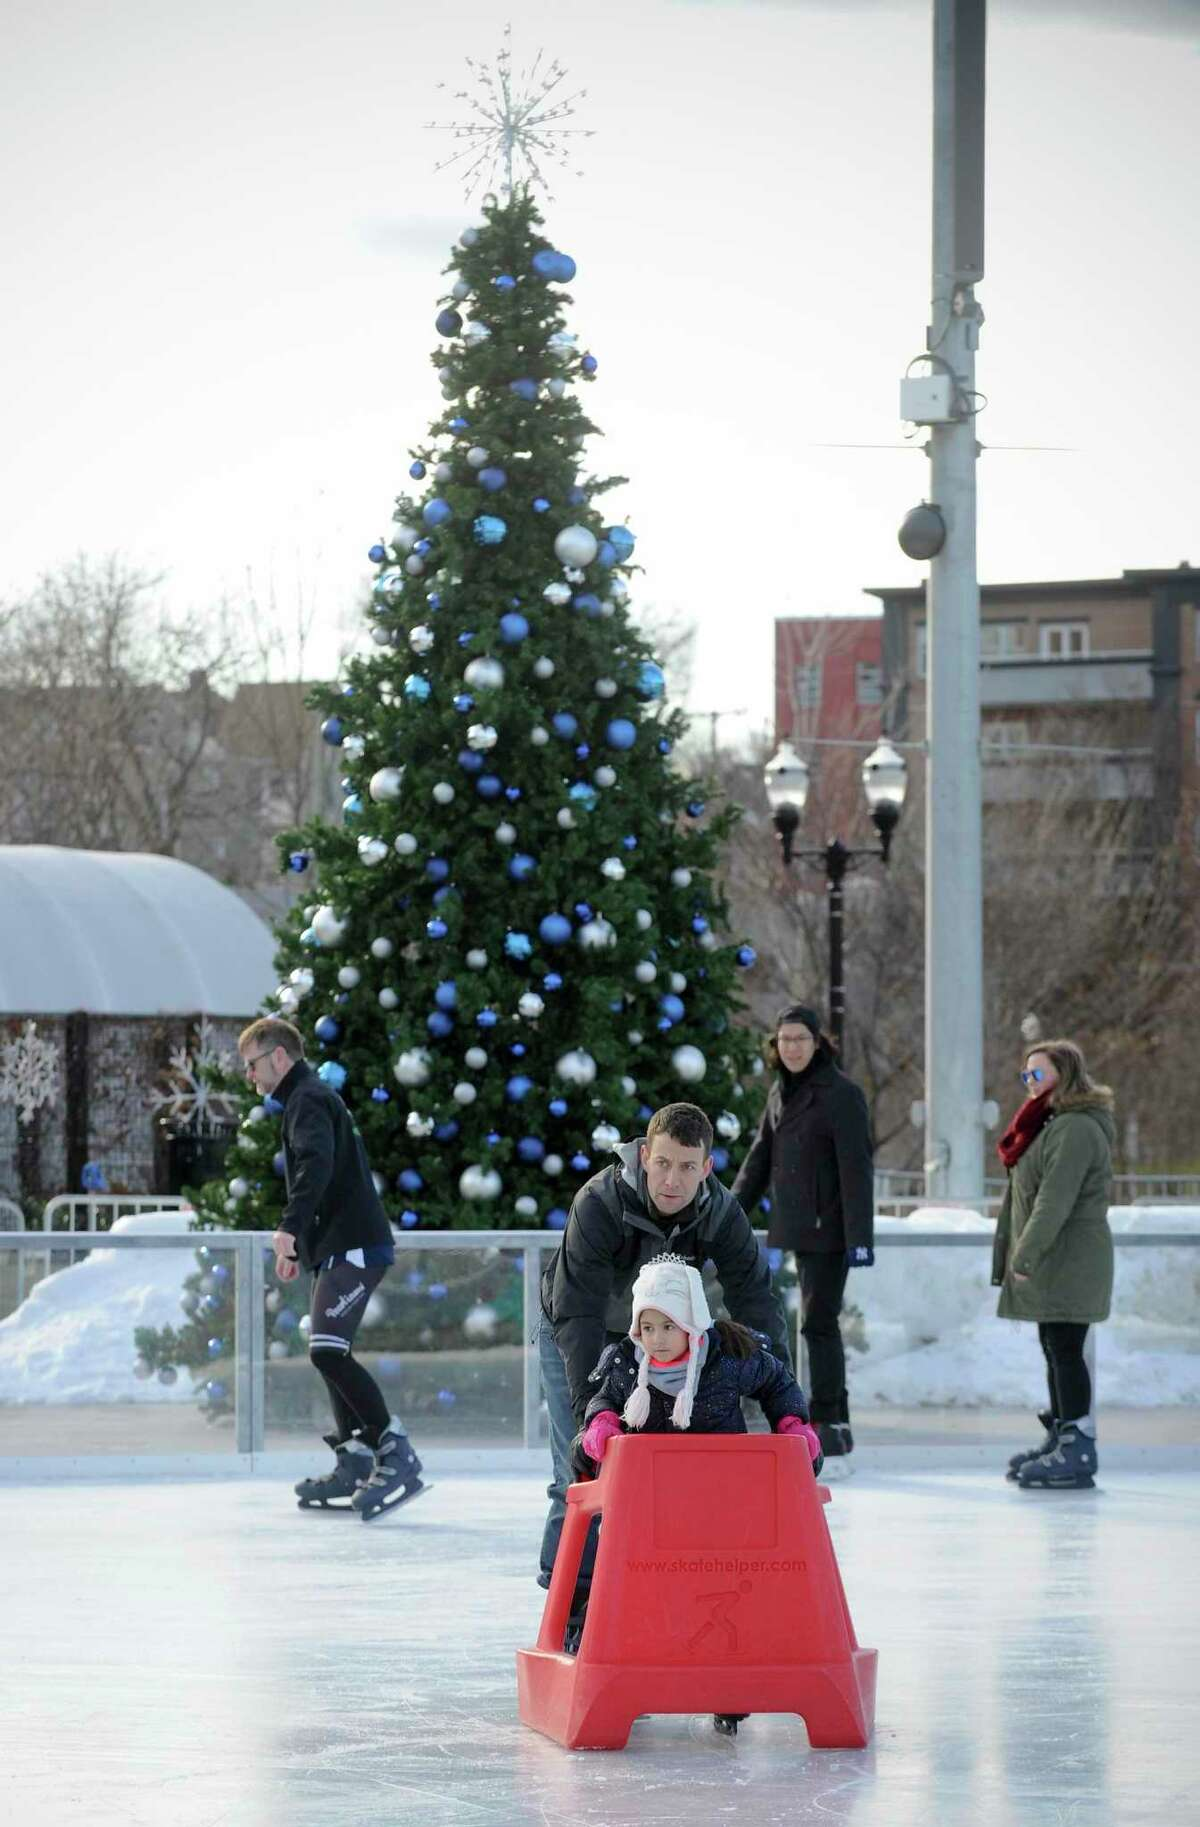 Christian Jacobsen and his daughter Jasmine, 5, take a spin on ice at the Steven and Alexandra Cohen Skating Center at the Mill River Park in Stamford, Conn. on Dec. 7, 2019. The skating center is just one of the many holiday features of the Half Full Brewery and Mill River Park Collaborative Winter Wonderland Market & Beer Garden, which features an indoor area to sit and relax, grab a light lunch from the Snack Box, grab drinks with friends at the Half Full Brewery Beer Garden and much more! The Winter Wonderland is intended to celebrate and unite local residents and professionals through a diverse and expanded slate of programming, which will run from Friday, Dec. 6 through Tuesday, Jan. 1, 2020.